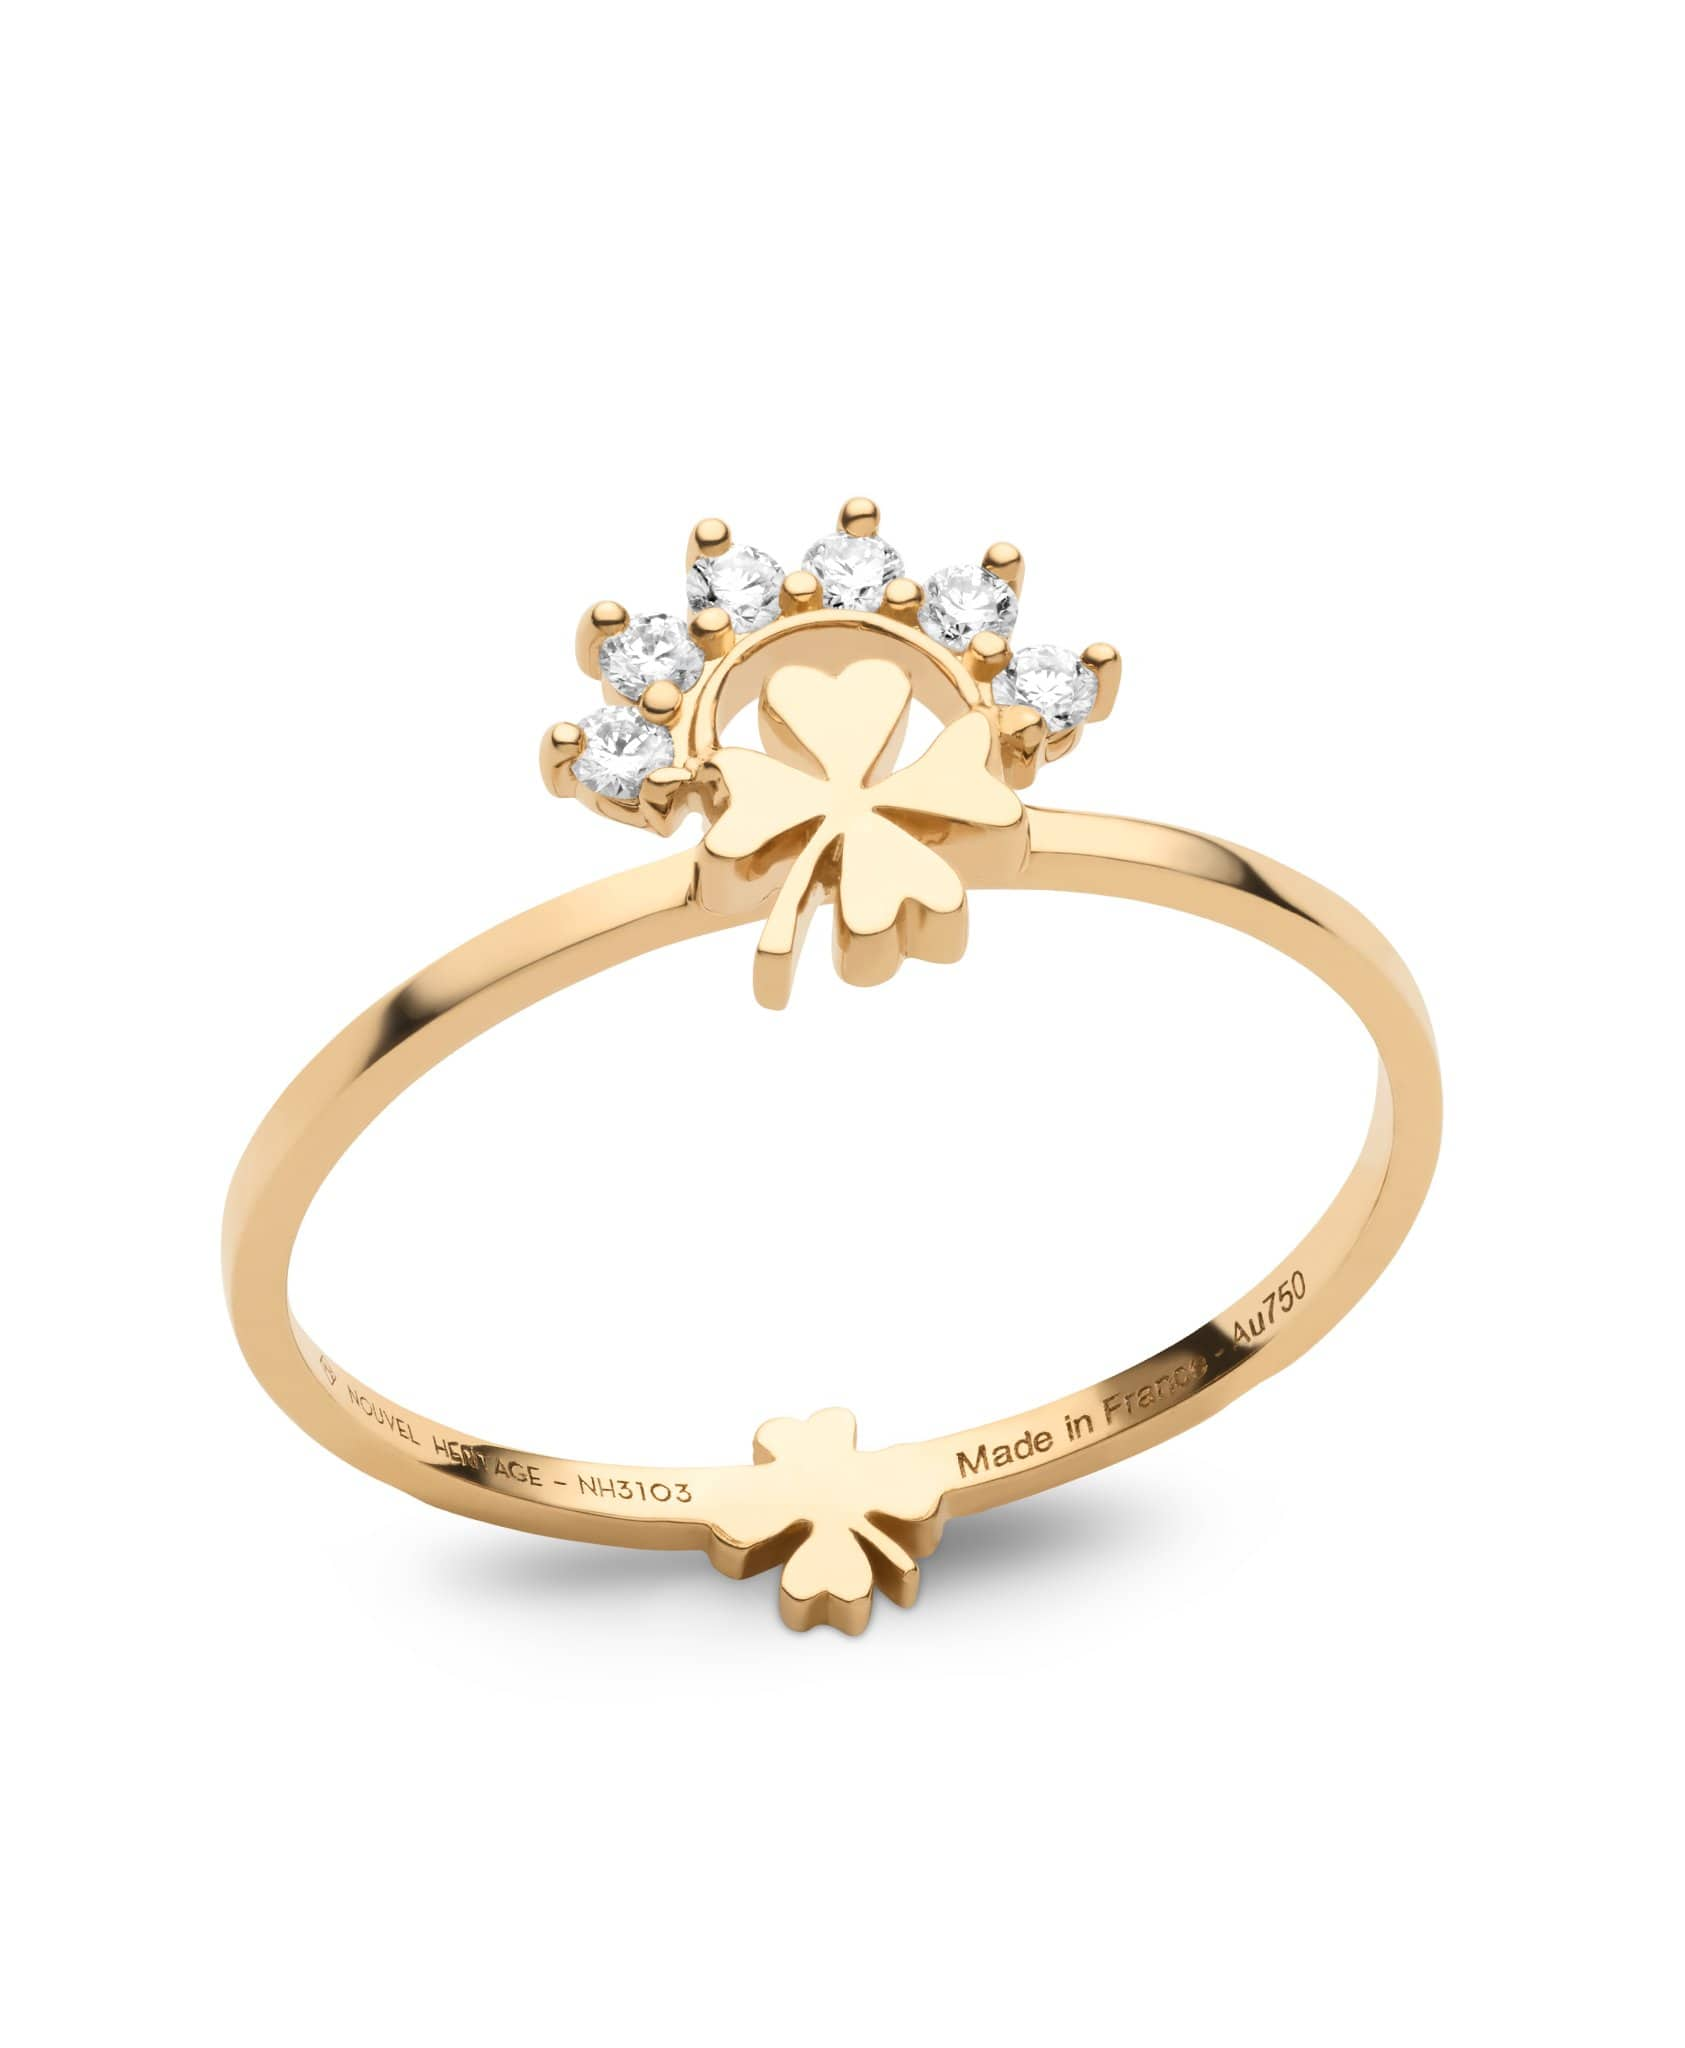 Small Luck Ring: Discover Luxury Fine Jewelry | Nouvel Heritage || Yellow Gold